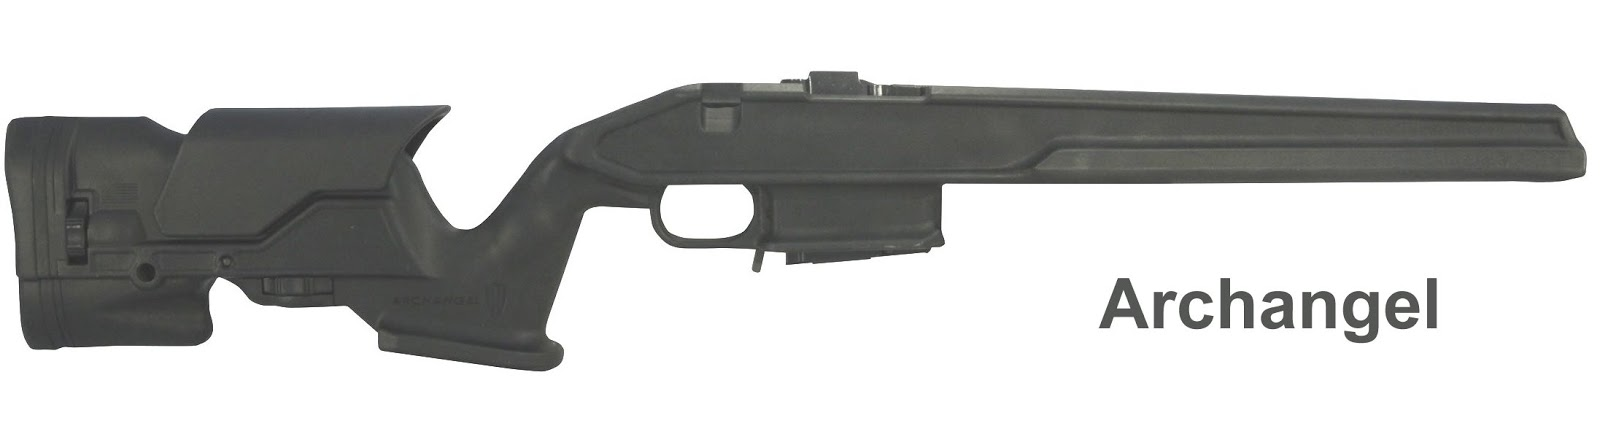 Archangel stock for remington 700 / Brand Coupons